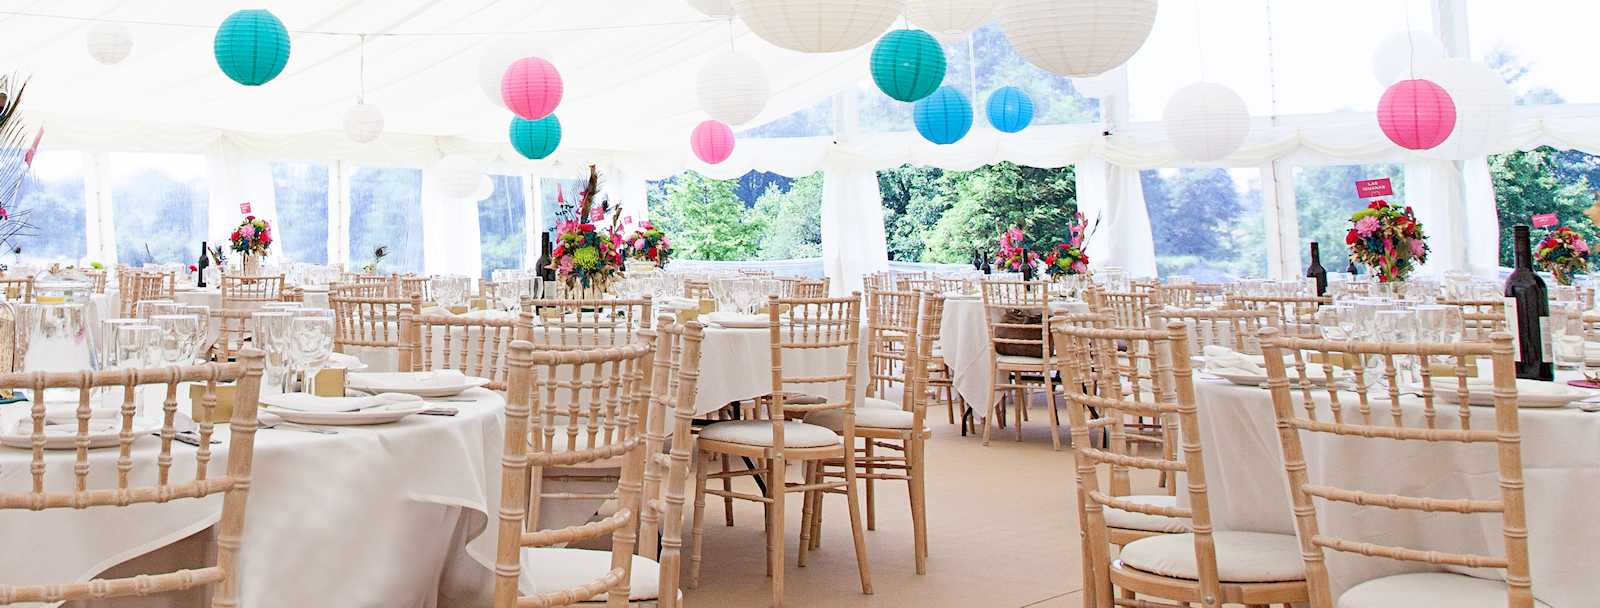 dining area in a wedding marquee